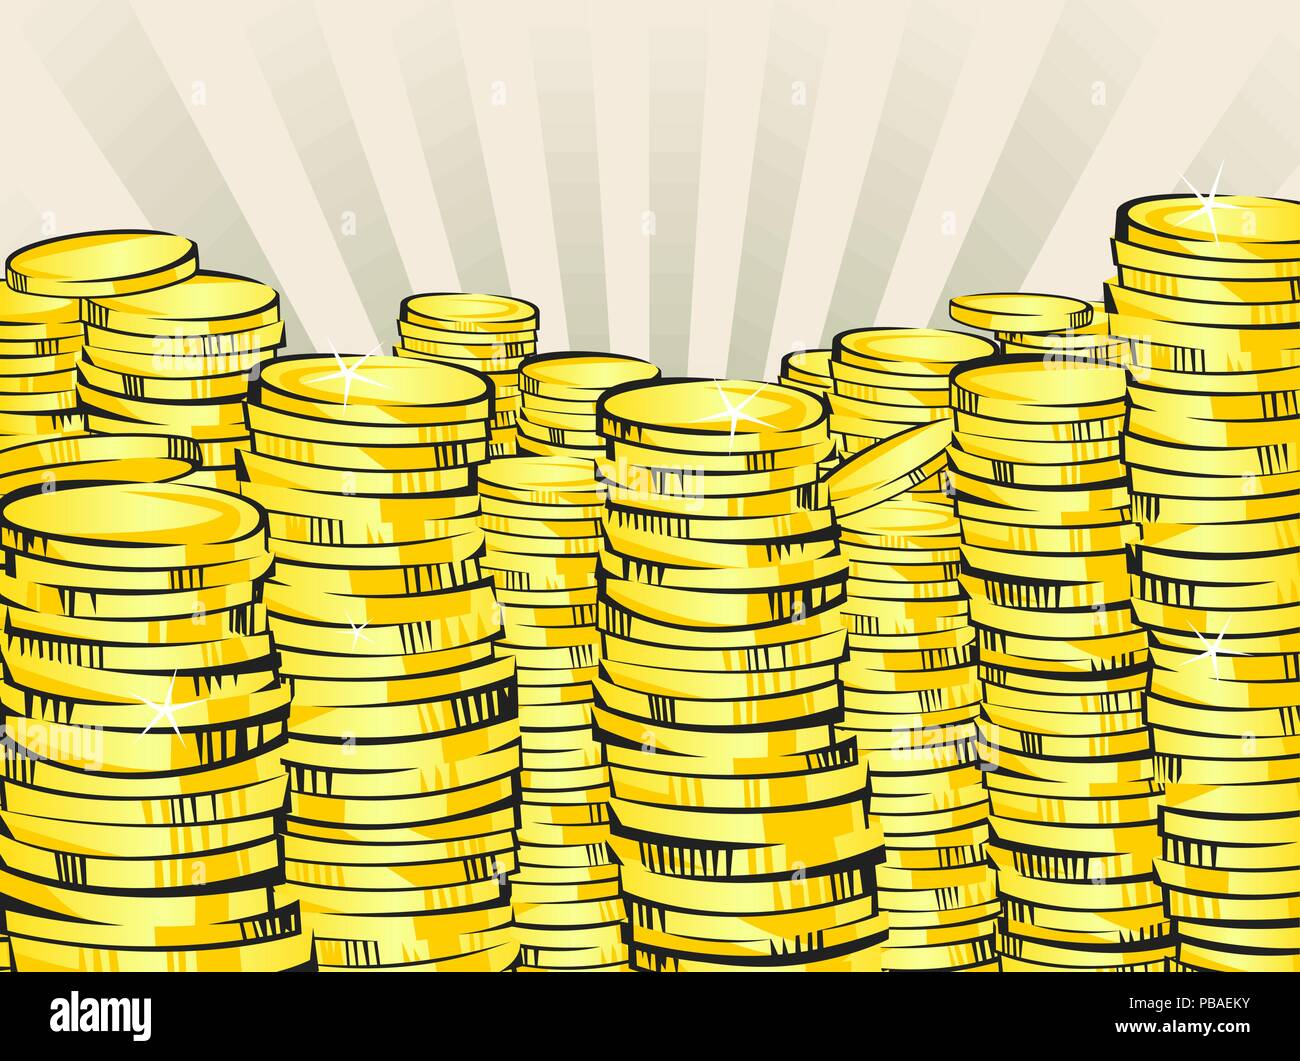 Golden money stacks. Gold coins. Retro vector illustration of the shining wealth. Lottery winning or bussiness success concept. Pop art treasure image - Stock Vector